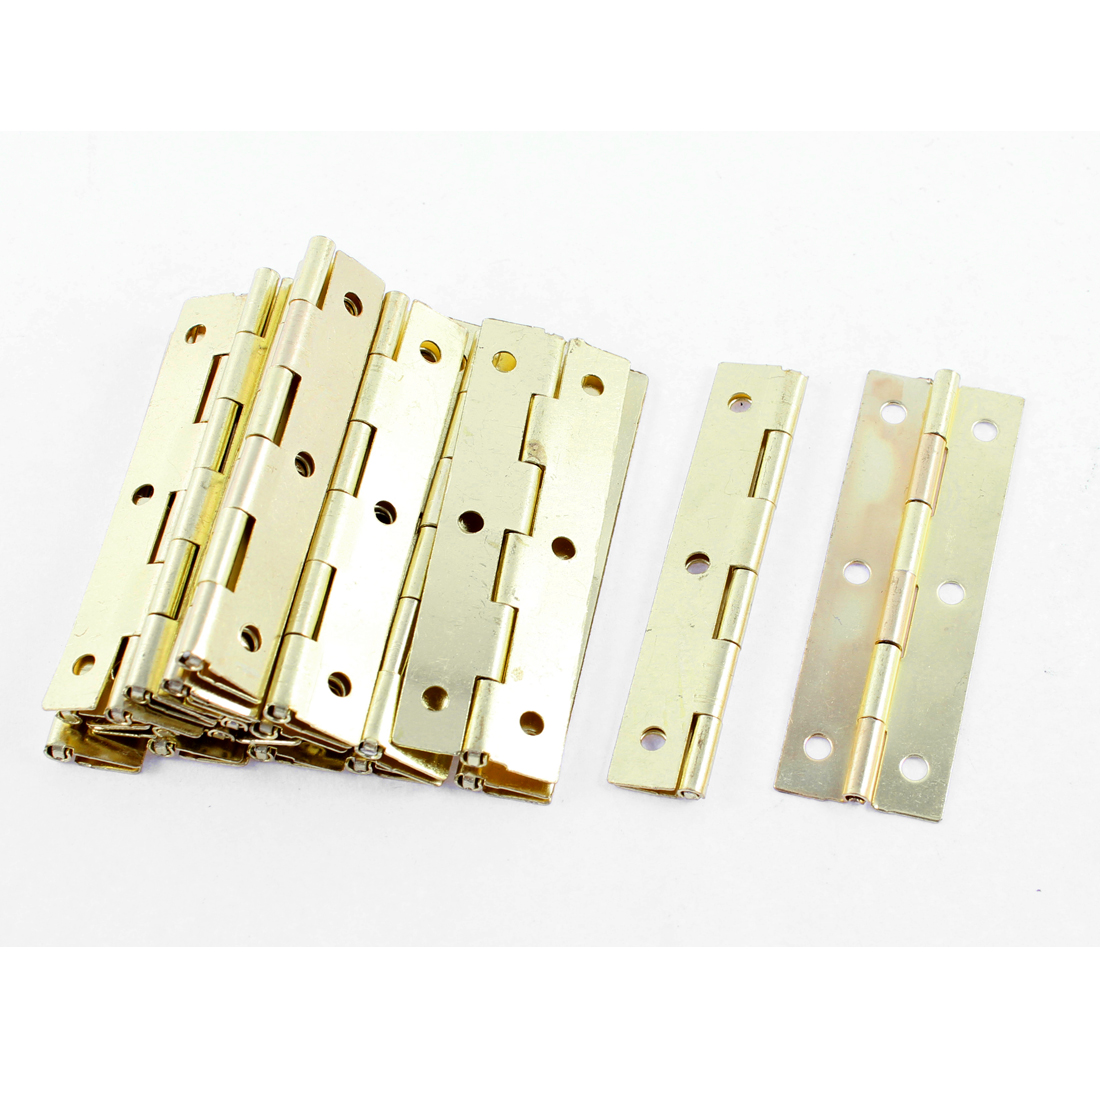 Cupboard Cabinet Gold Tone Rotatable Foldable Door Hinges Hardware 20 Pcs